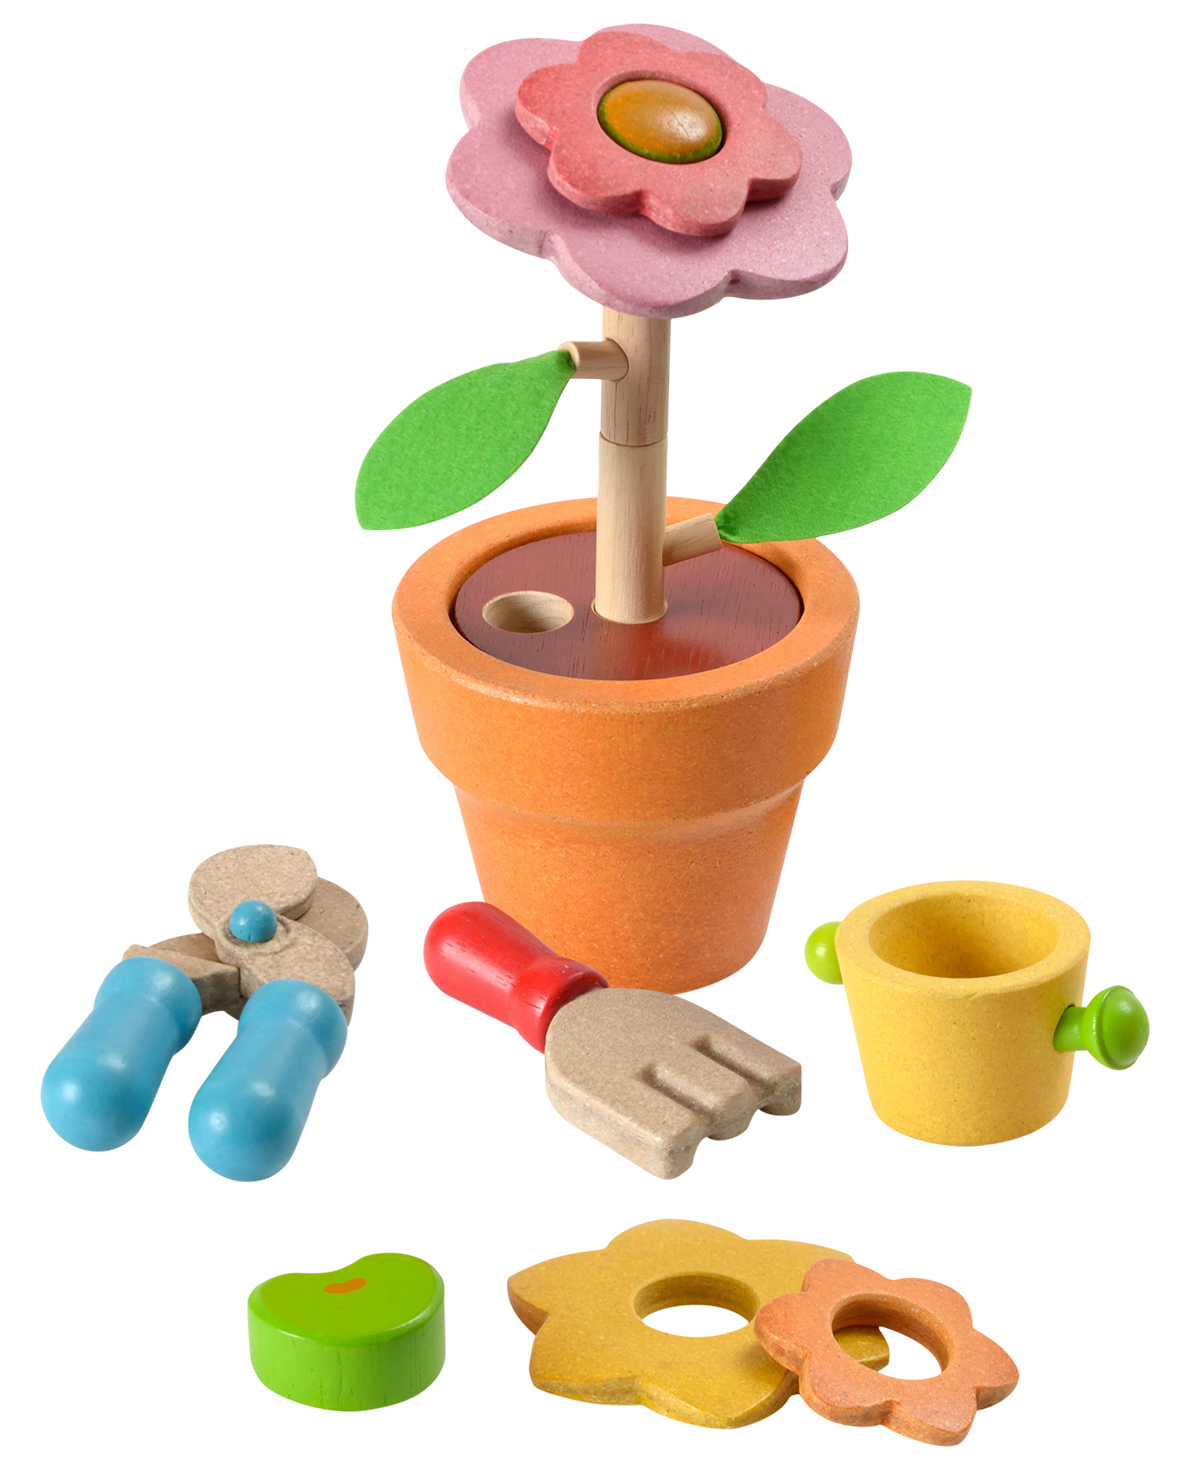 Clipart toys lot toy. Lots of lovely art